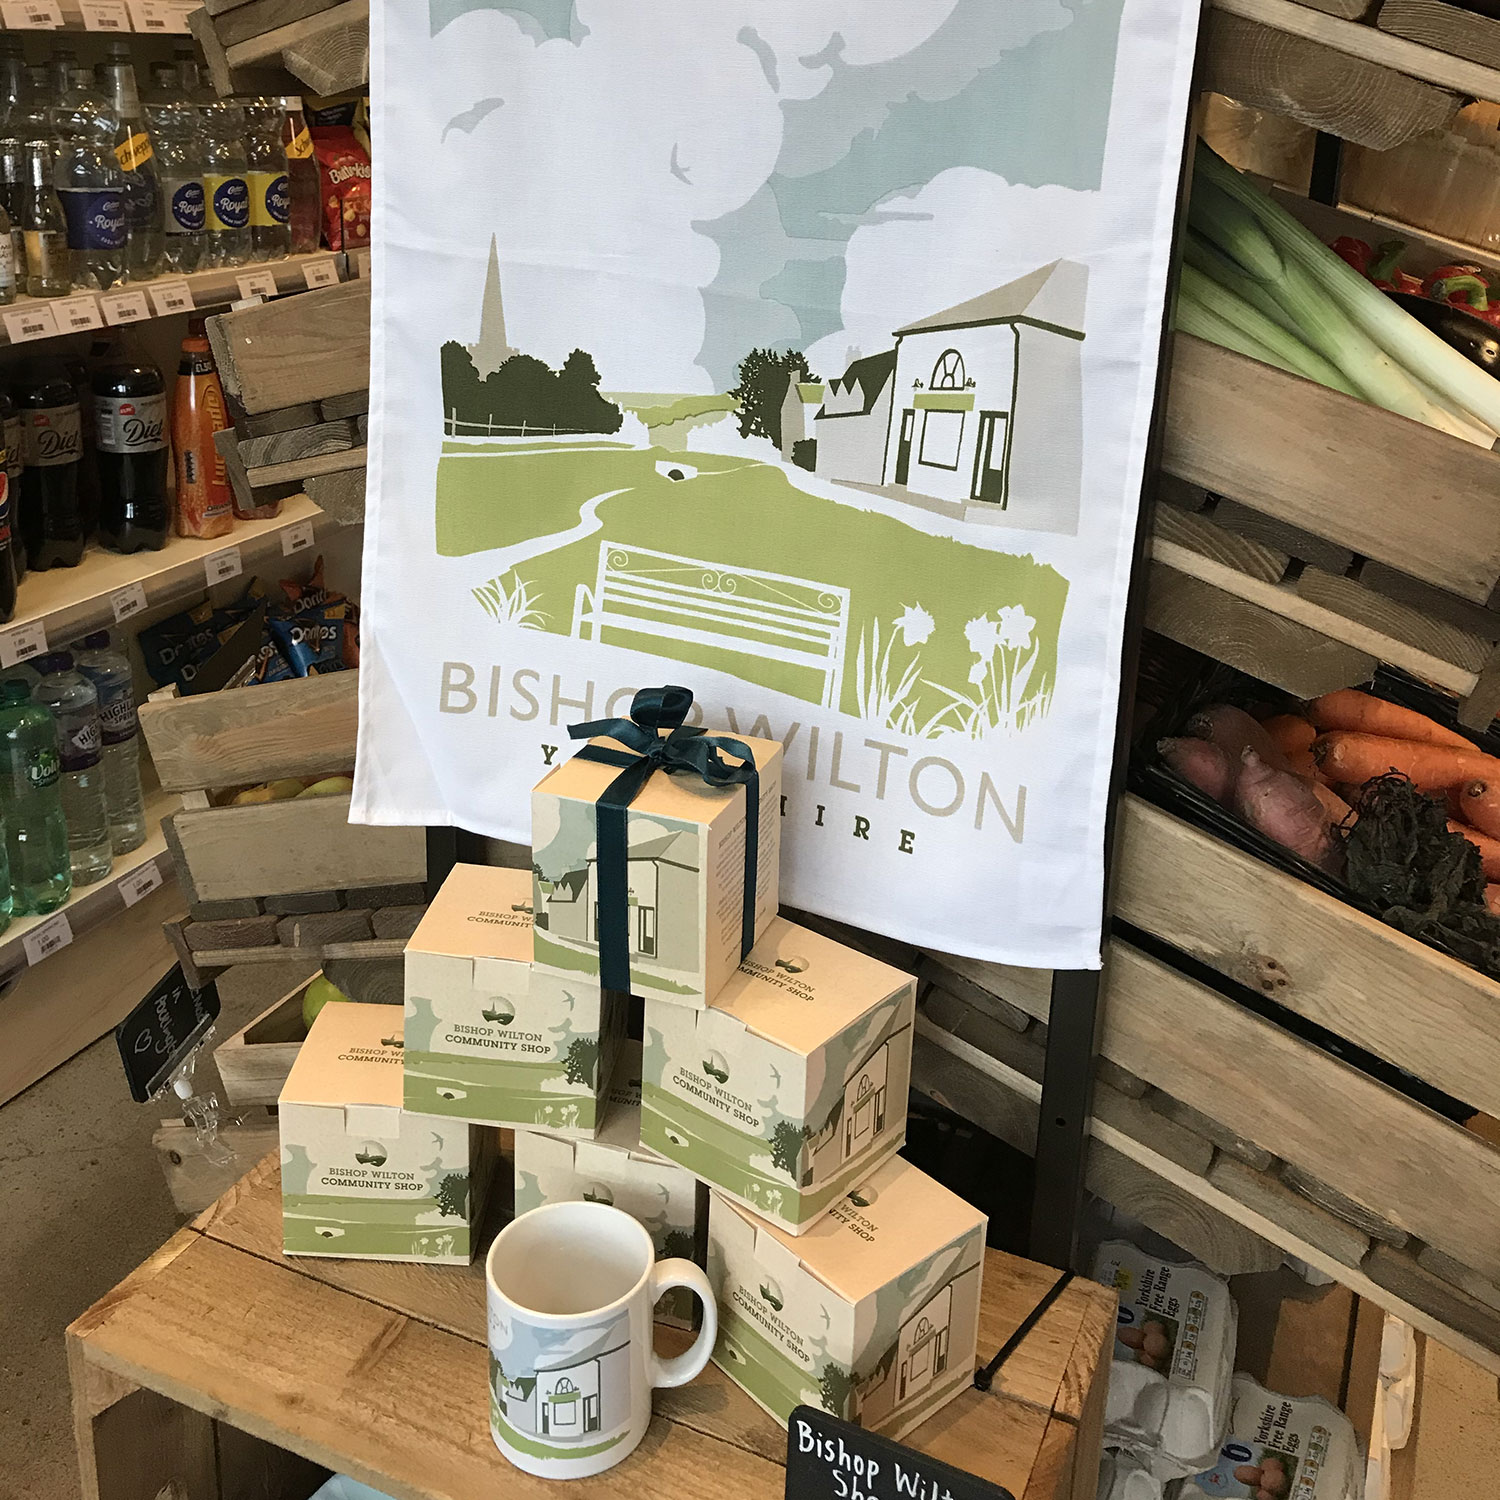 Our range of Bishop Wilton products include high quality tea towels, coasters, mugs and water bootles.